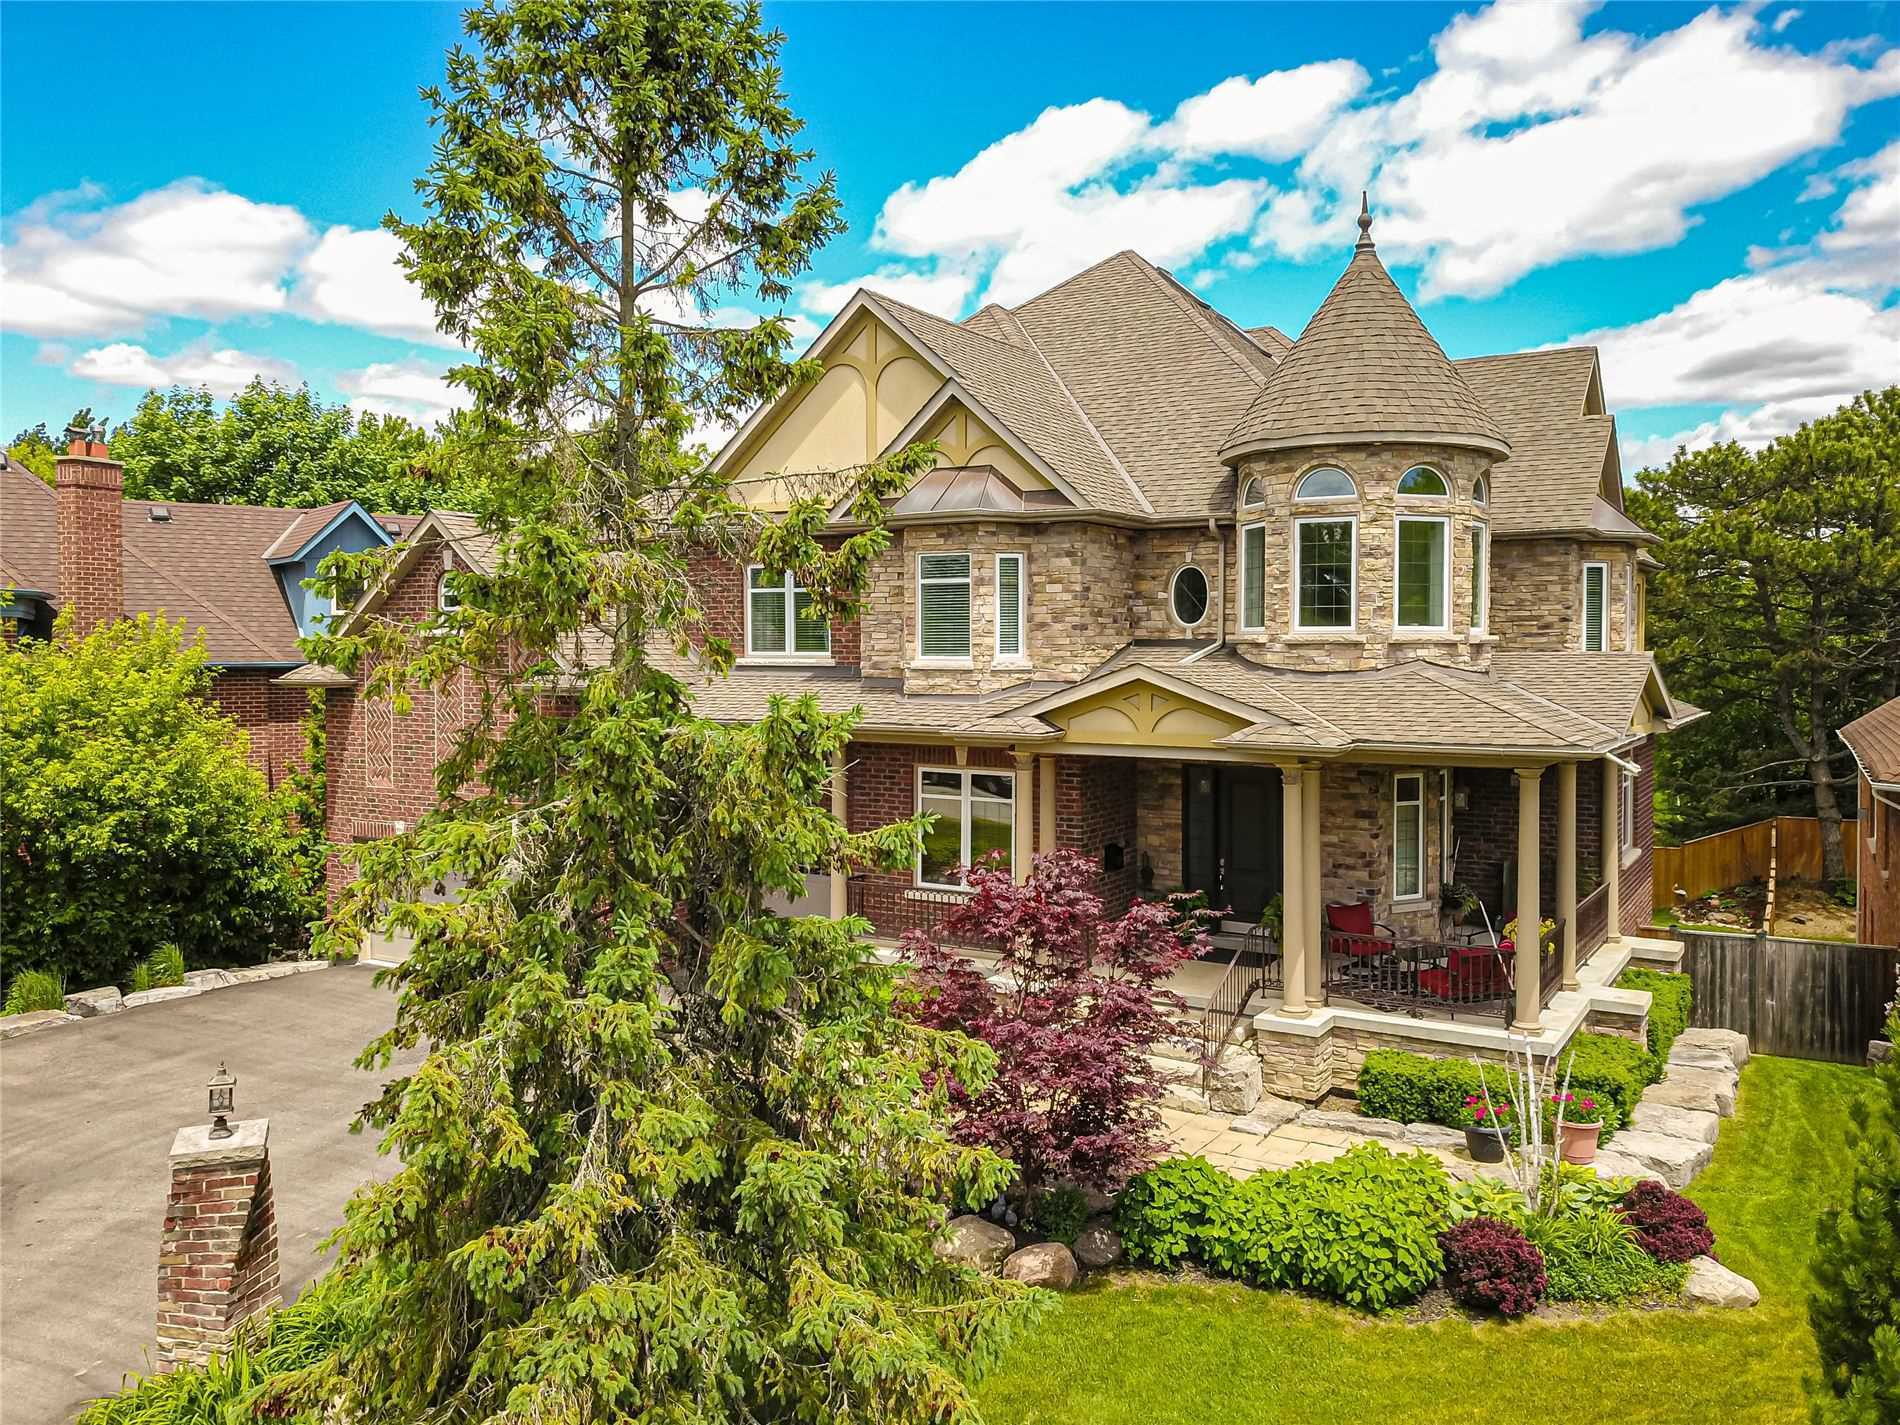 Luxury One Of Kind Custom Home ,Nestled In Prestigious South Rougemount On A 1/4 Acre Lot.8000 Sqft Of Meticulously Crafted Living Space.Multi Generational Home.Open Concept Chefs Kitchen & Great Room W/Soaring Ceilings.5 Brm W/Ensuite&Closets With B/I's .4 Season Muskoka Rm.Panic Rm.Large Heated 3 Bay Garage W Room To Install Car Lifts.Lower Walk Out To Yard Heated Stone Floors(Slate,Marble,Granite)Through Out.Large Wine Cellar.Full 2nd Kitchen Bsmtm.